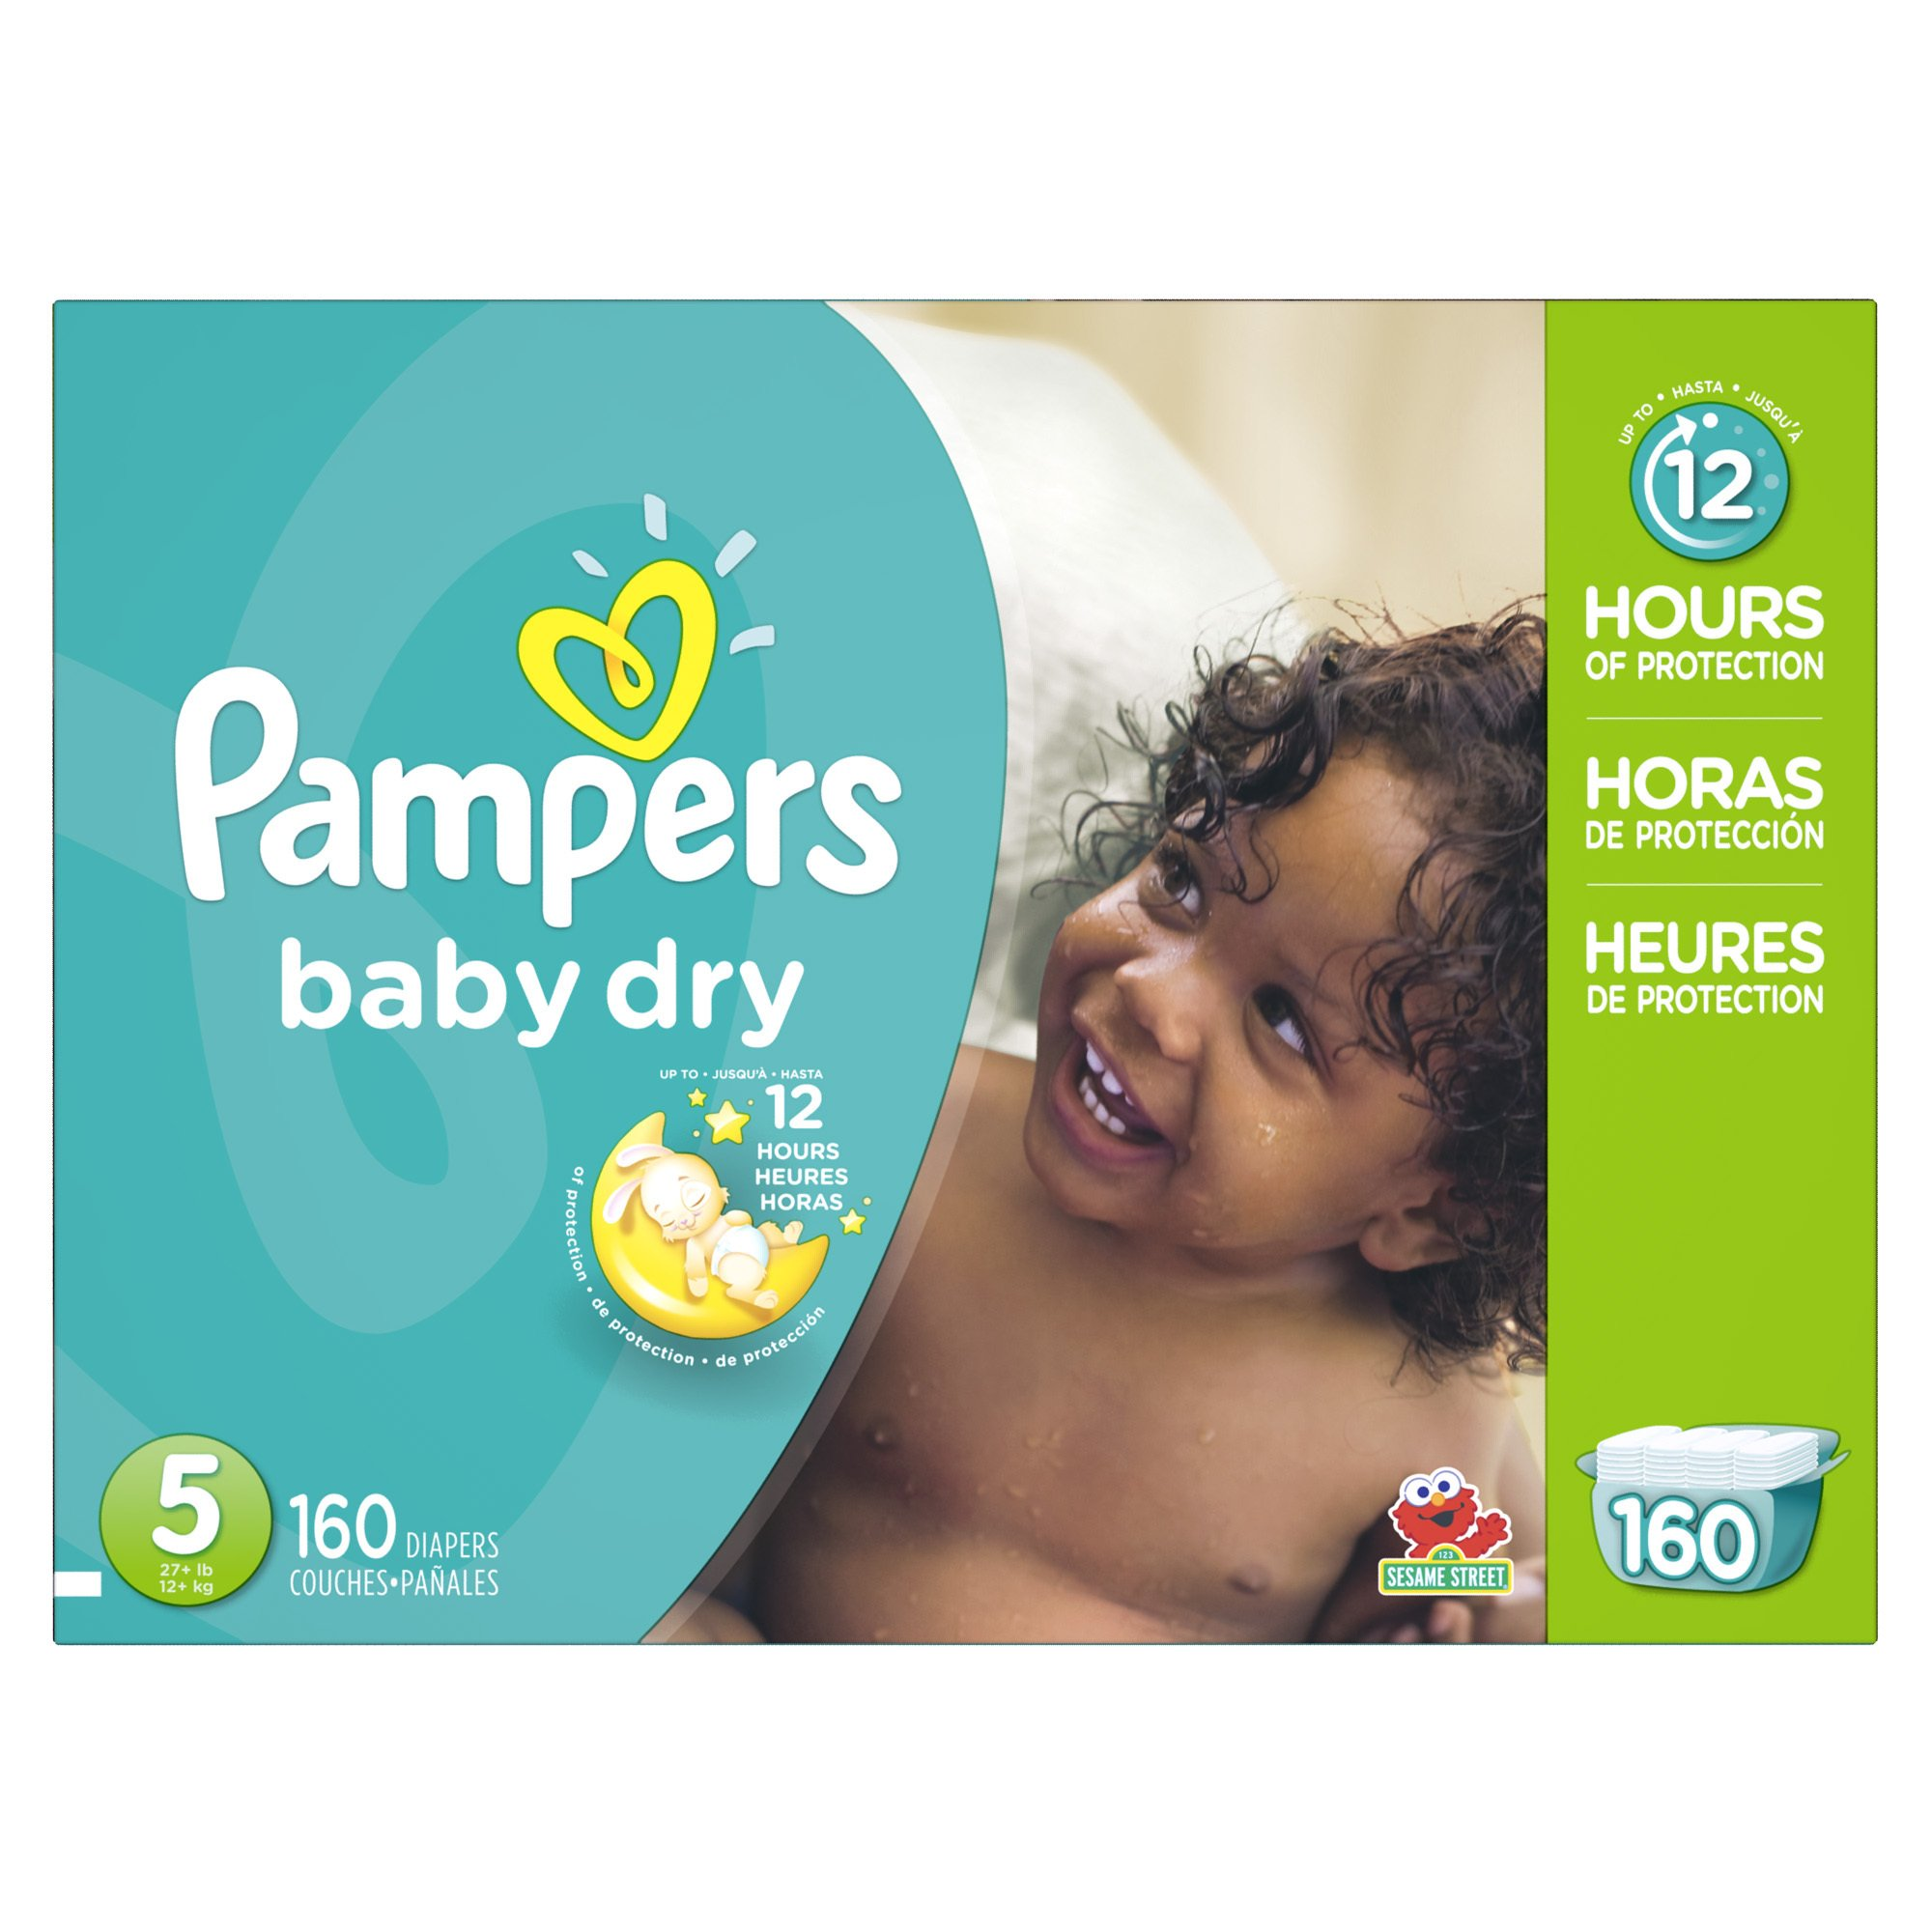 Pampers Baby Dry Diapers Size 5 Economy Pack Plus 160